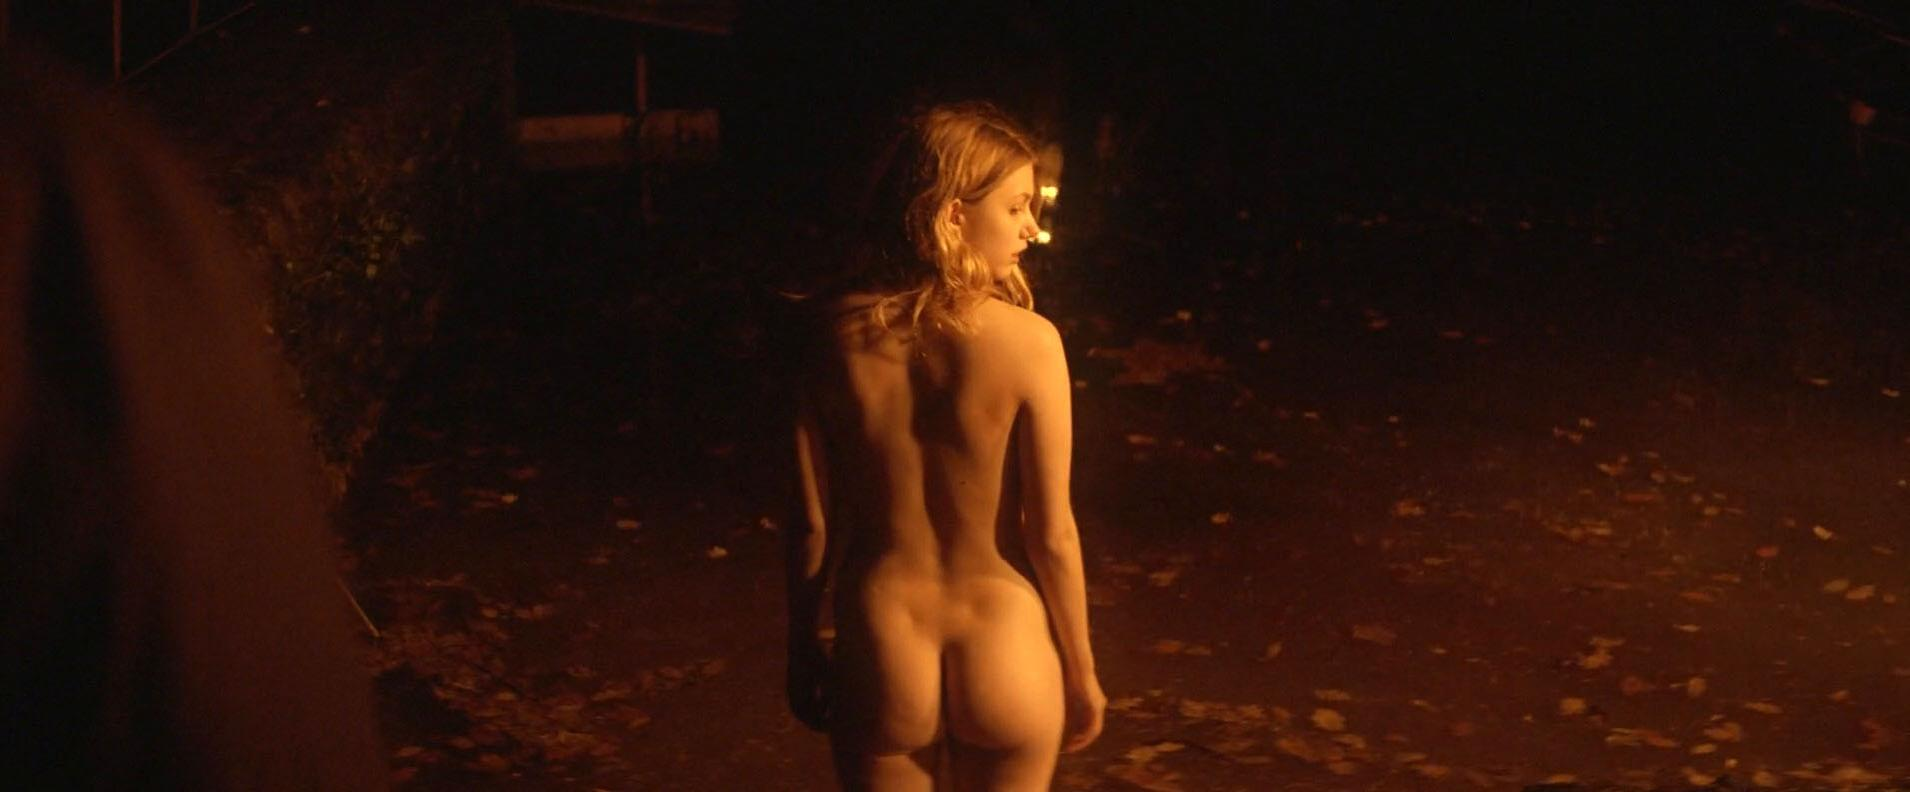 Hannah Murray nude, Elinor Crawley nude - Bridgend (2015)